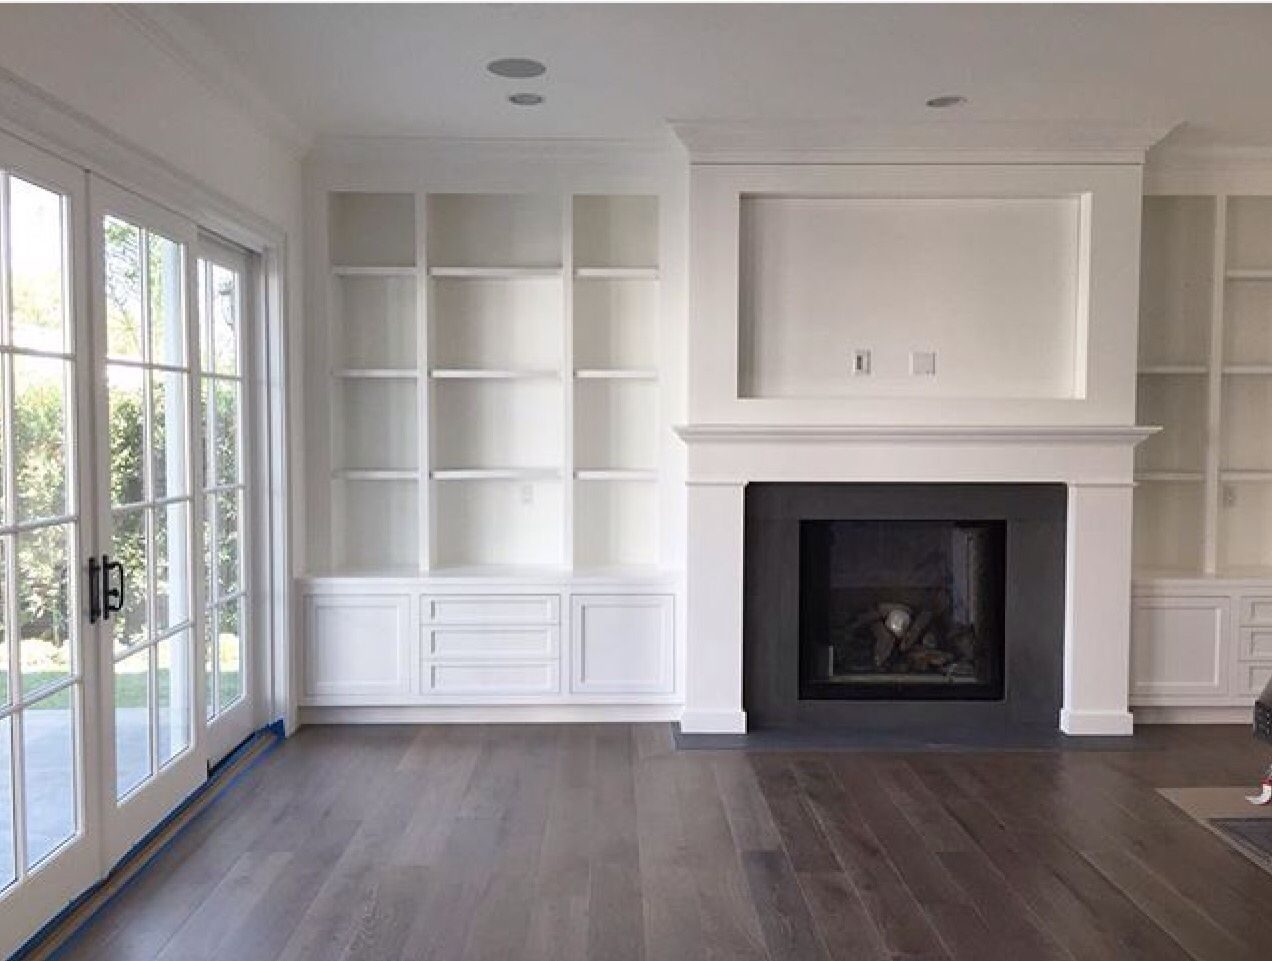 amber interiors built in shelving around fireplace cut out for tv. Black Bedroom Furniture Sets. Home Design Ideas